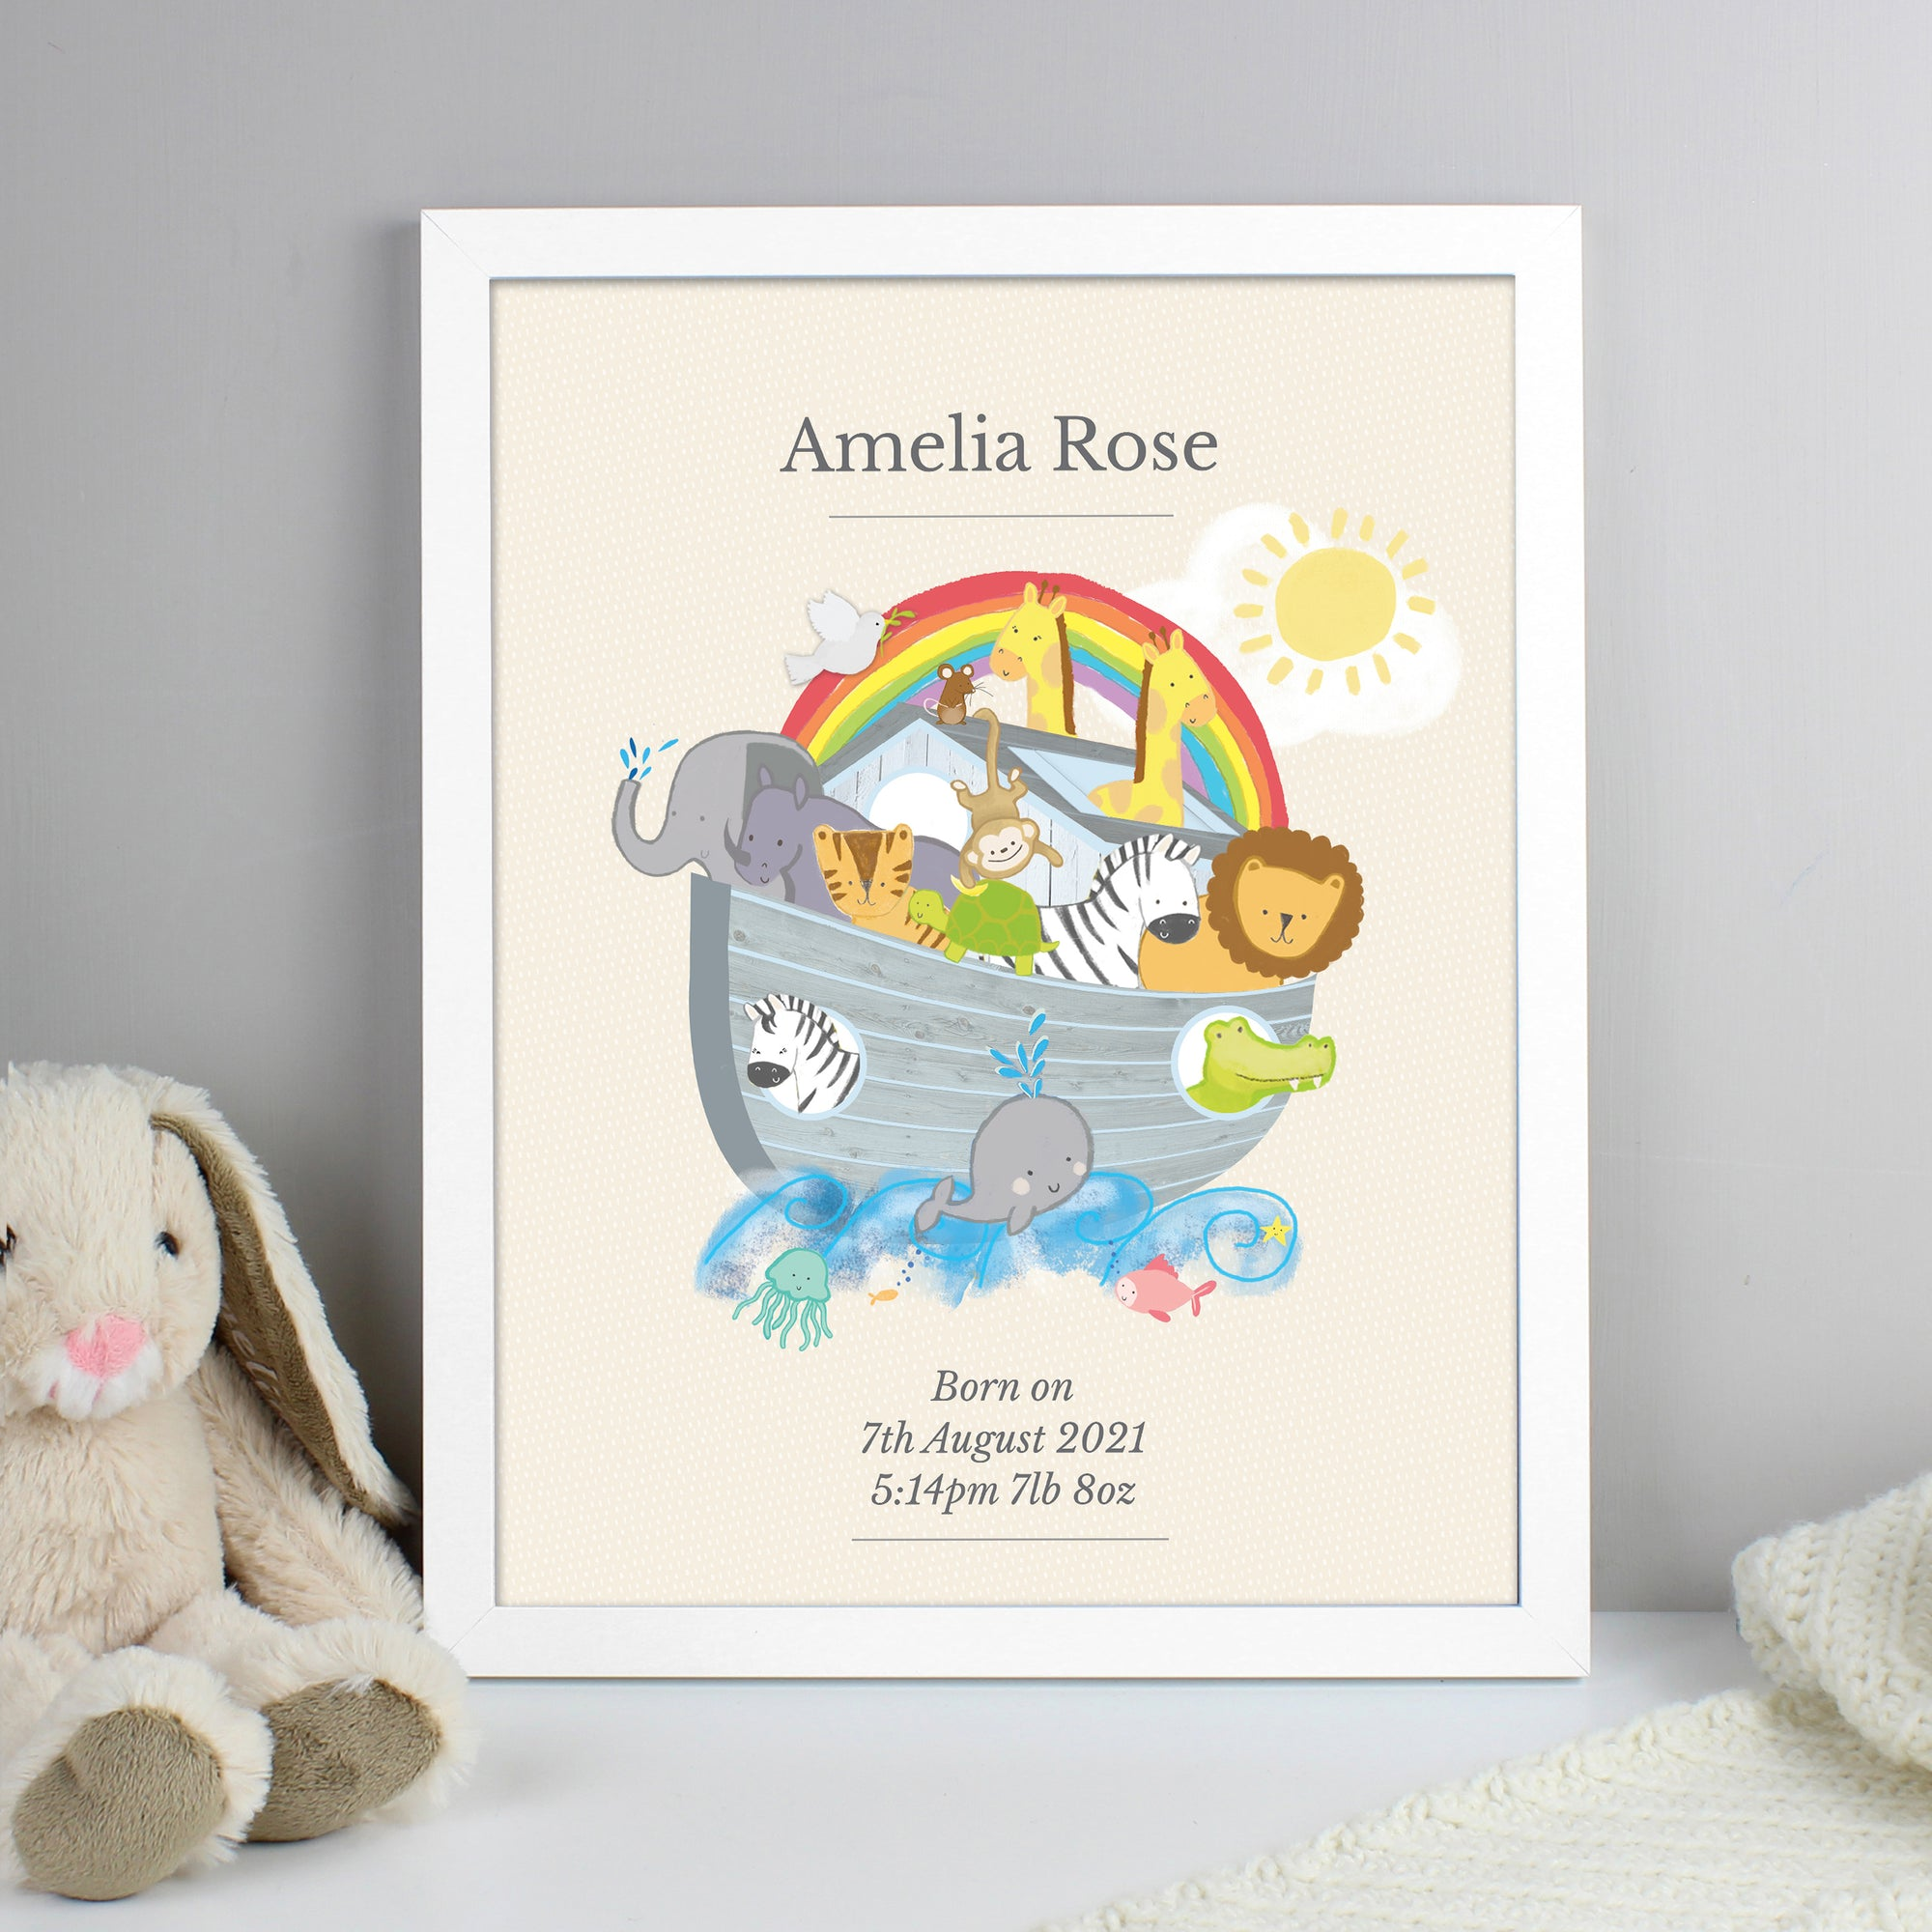 A framed print of Noah's Ark which can be personalised with a name and your own special message or birth details. The print has a cream background with a full illustration of Noah's Ark in the centre of it with animals on the deck plus swimming around the Ark.  A name can be added above the illustration of the Ark and below it you can add your own information over up to 3 lines. The print comes in a white frame and measures approximately 38 cm high and 30 cm wide.